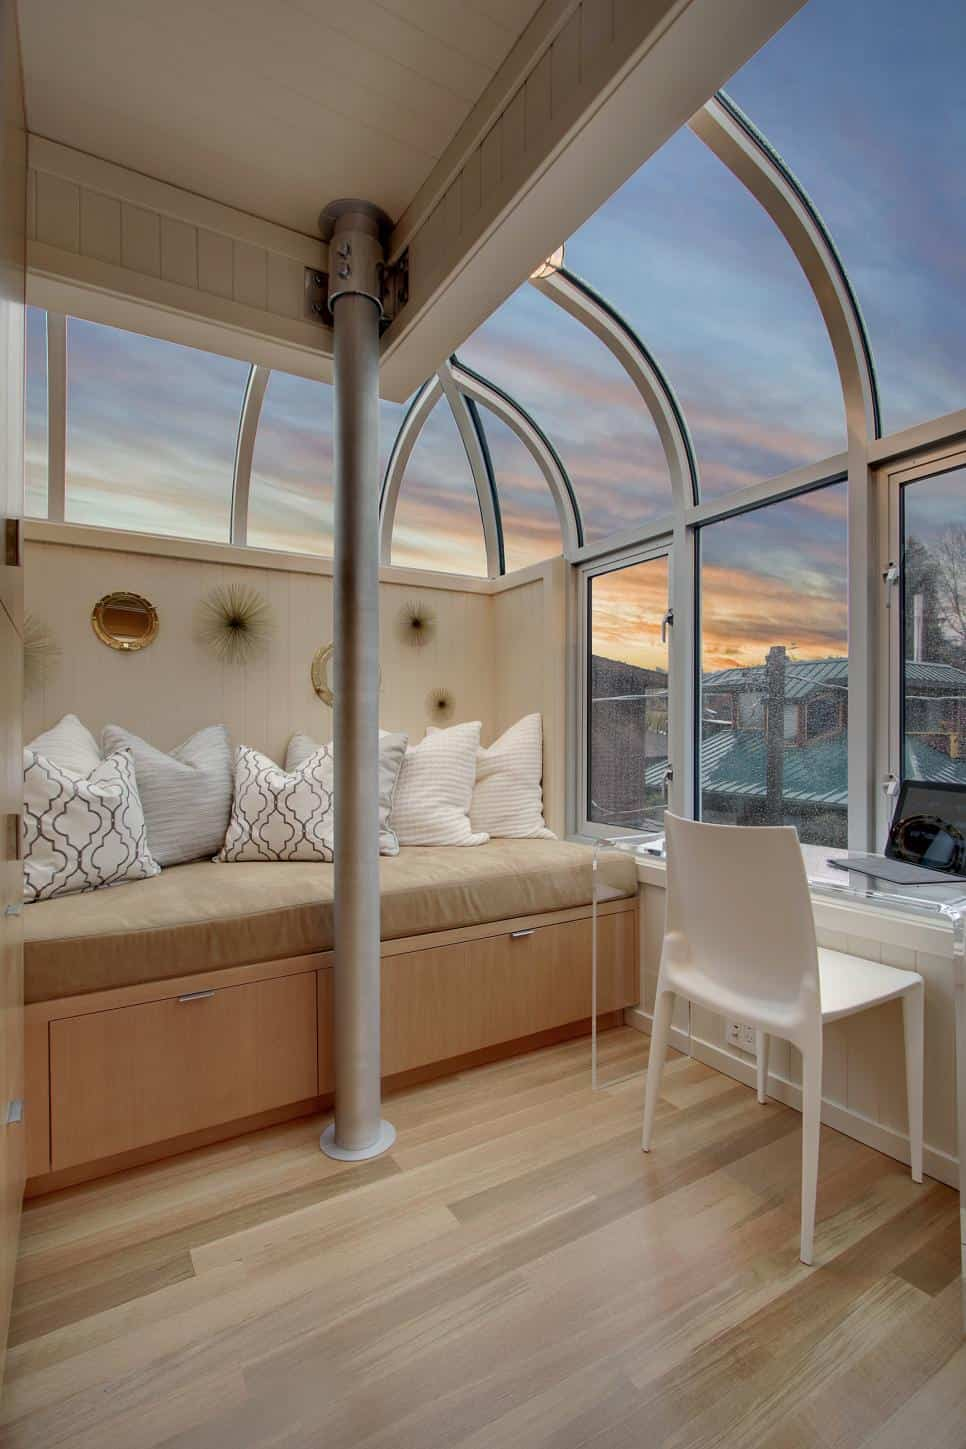 Seattle Houseboat – Leading Real Estate Companies of the World® and Windermere Real Estate